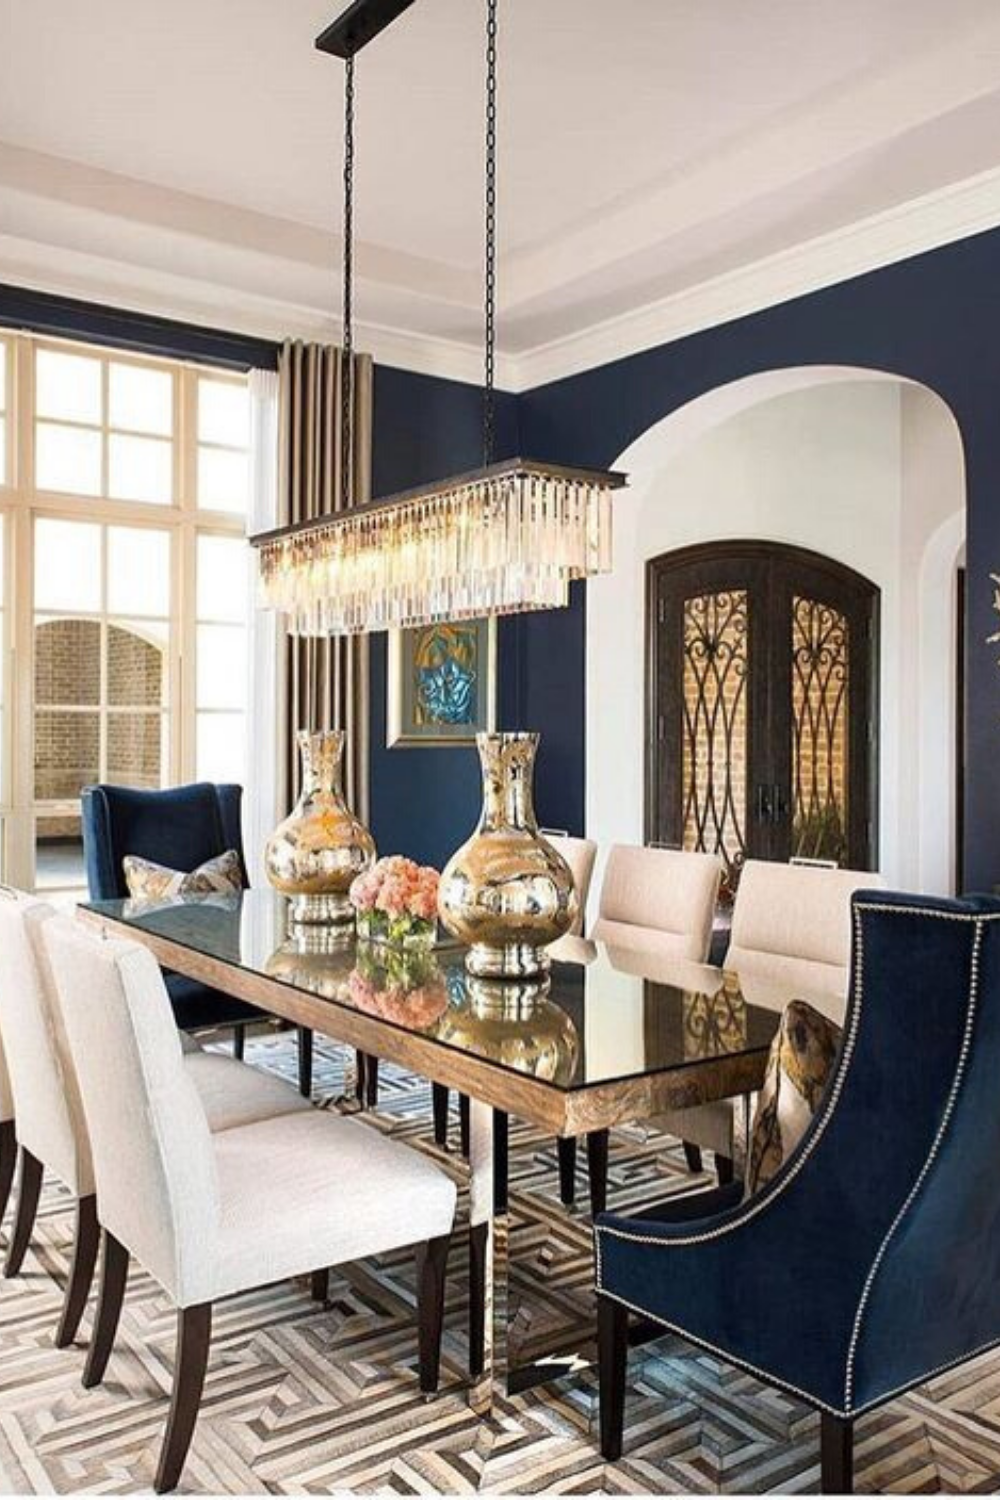 Home Decor Inspiration In 2020 Elegant Dining Room Luxury Dining Room Luxury Dining